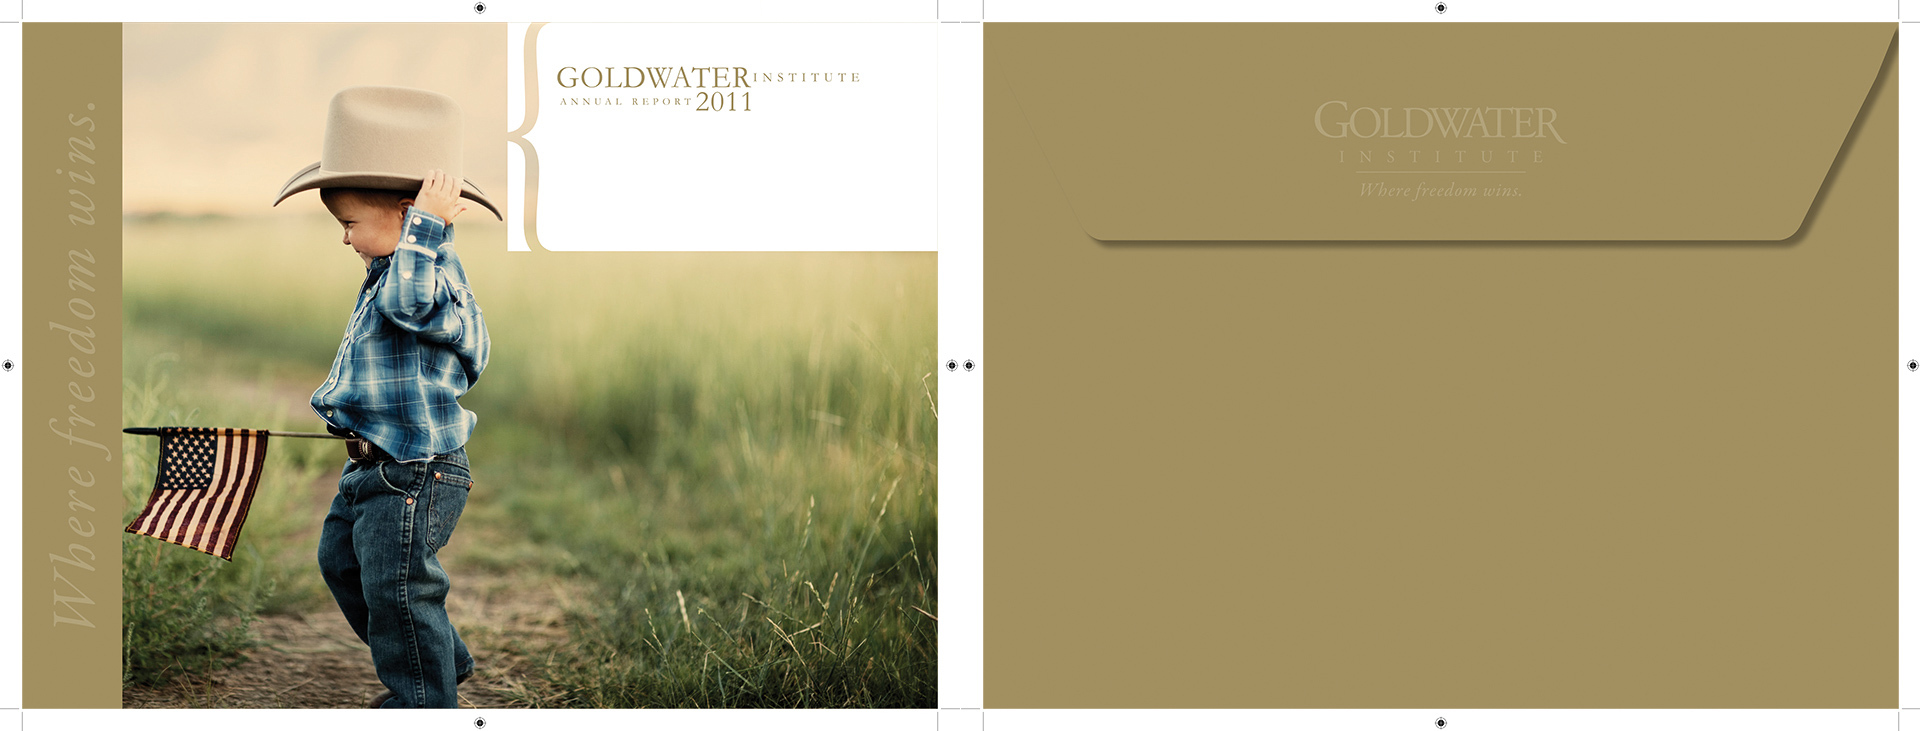 Goldwater Institute Annual Report Custom Envelope Design